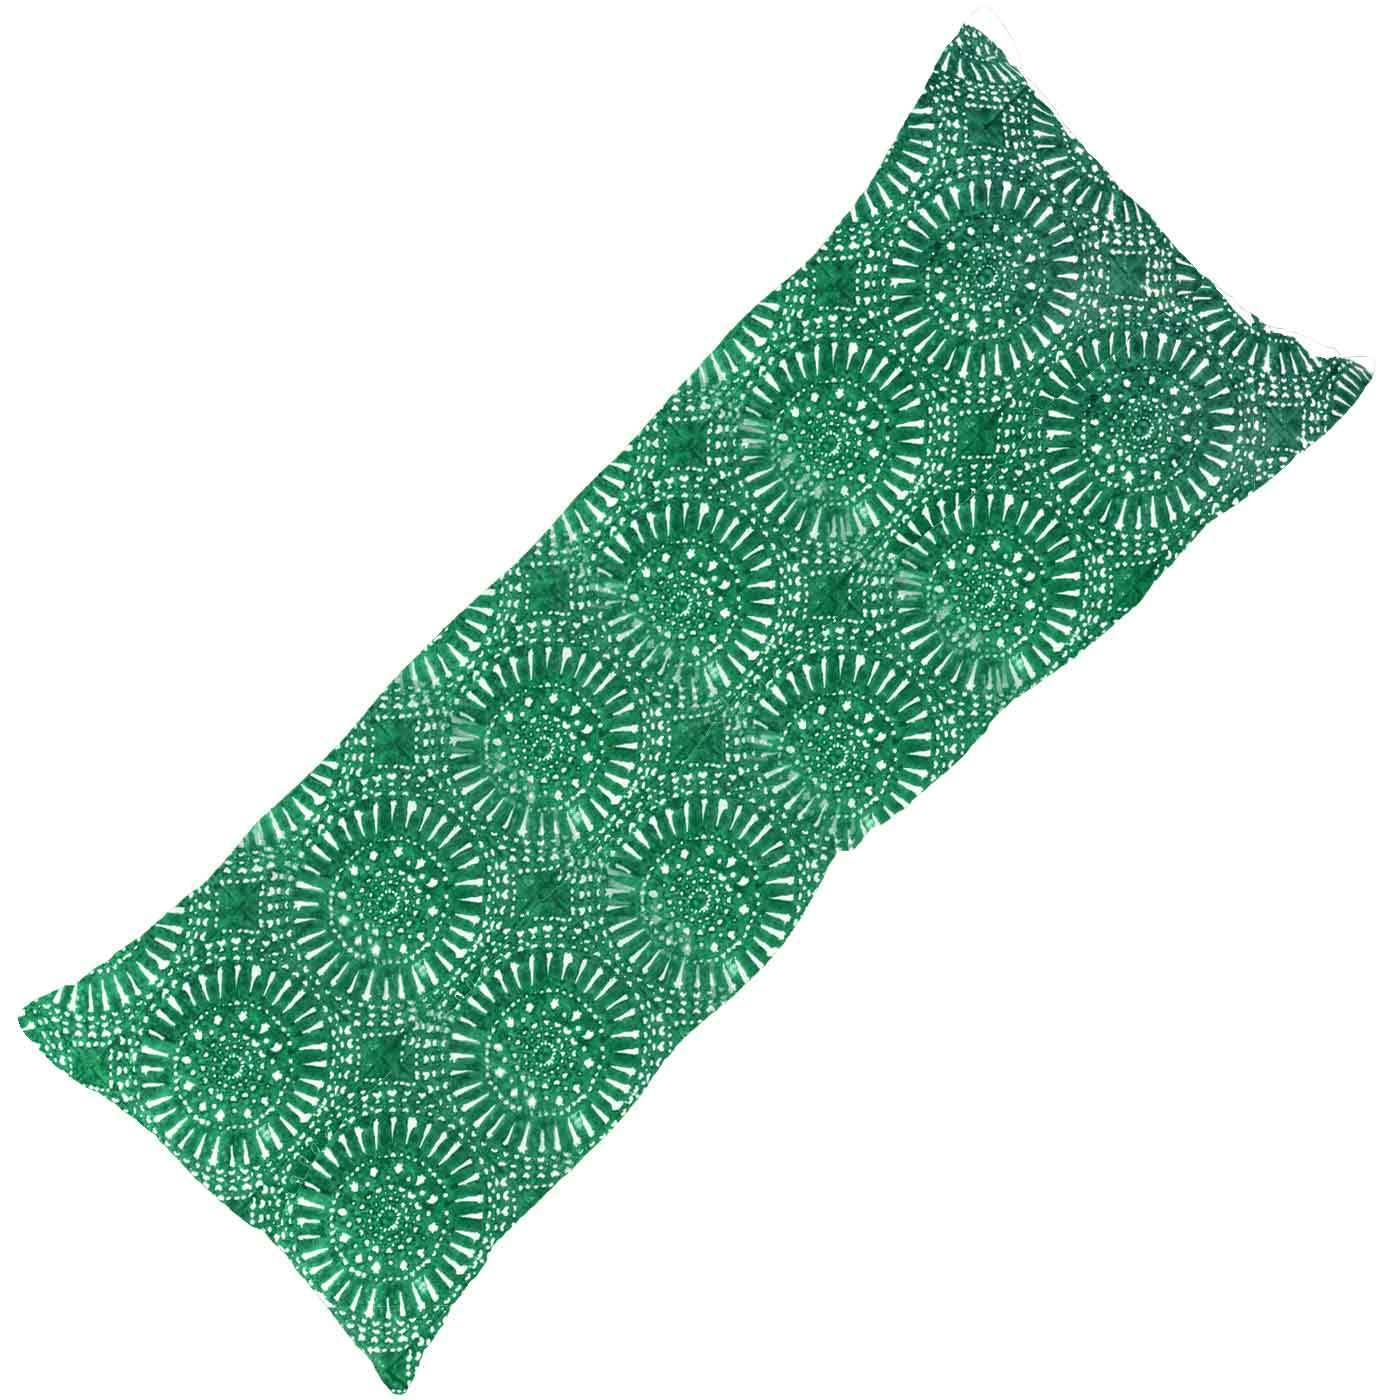 Bandhini Homewear Design Long Lumber Cushion Emerald / 14 x 36 Sphere Print Emerald Long Lumber Cushion 35 x 90 cm